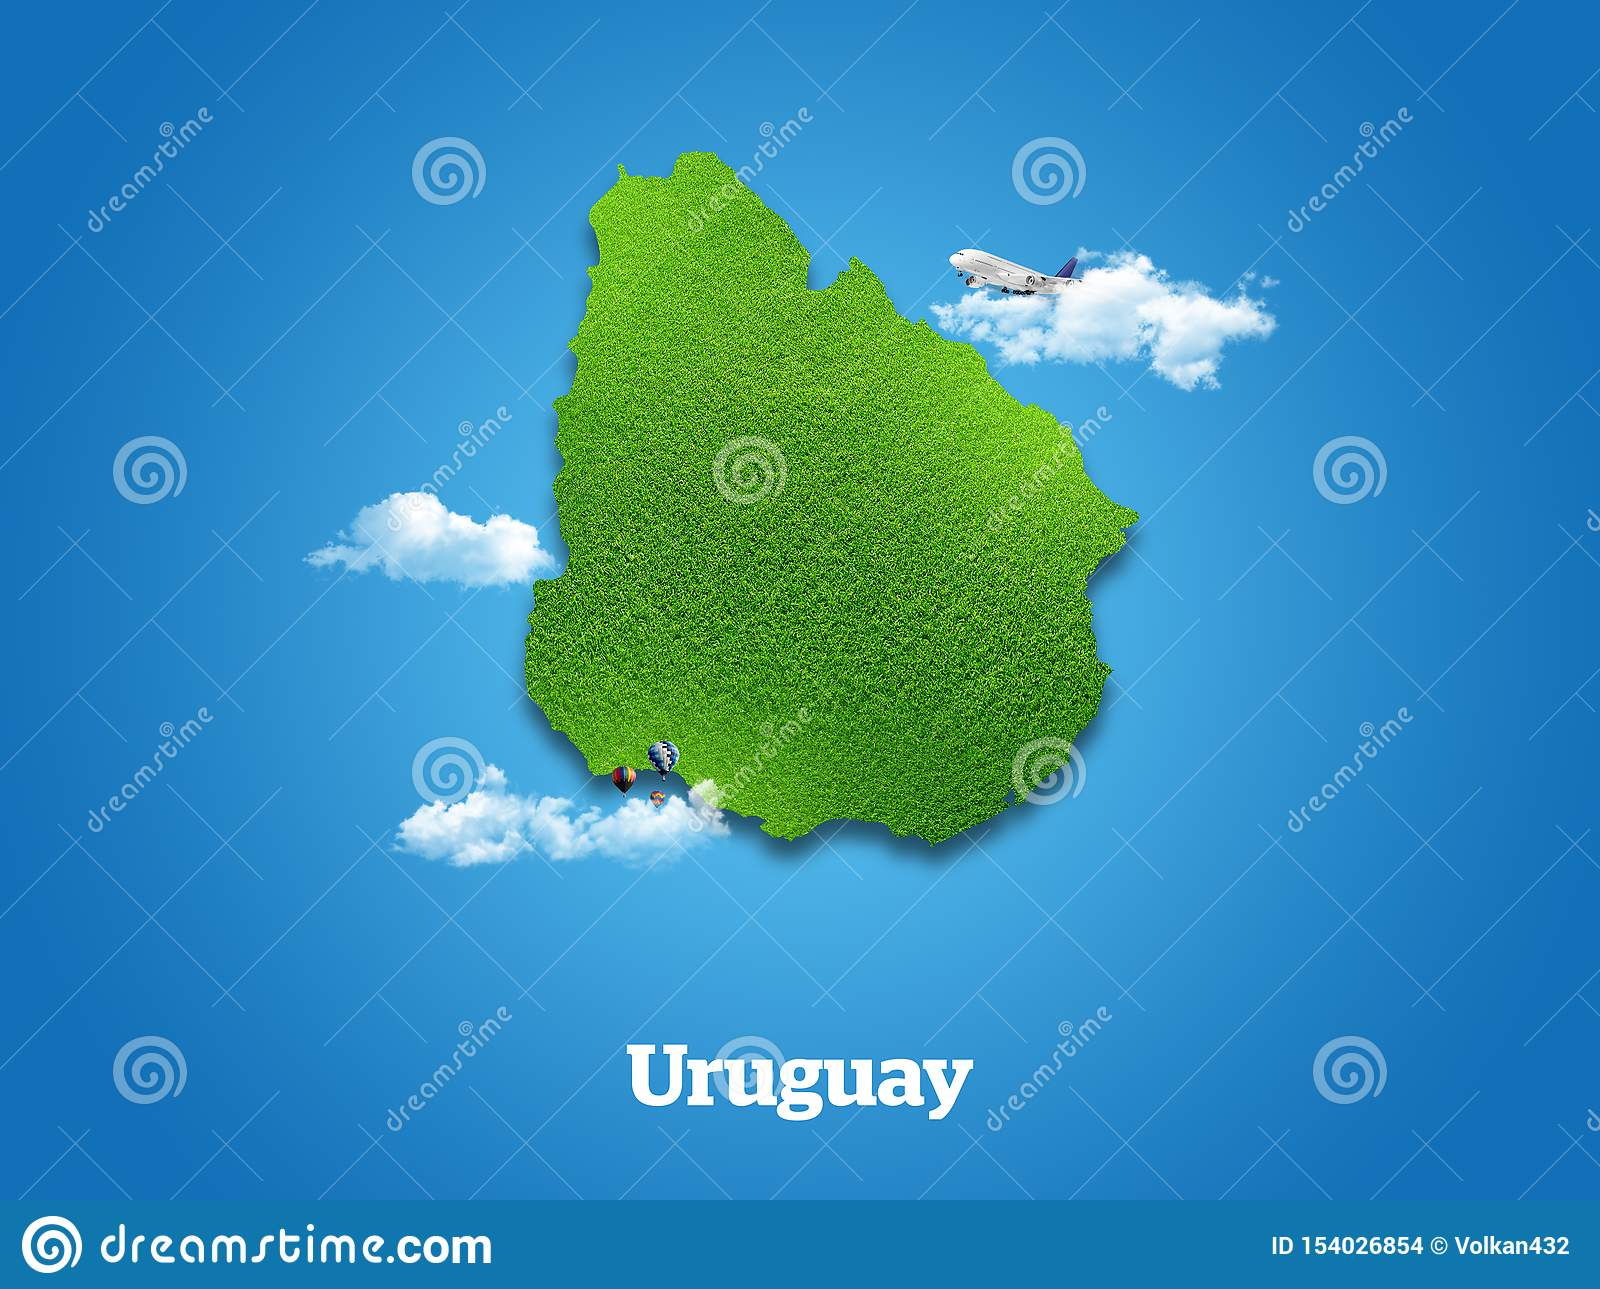 Uruguay Map. Green grass, sky and cloudy concept.